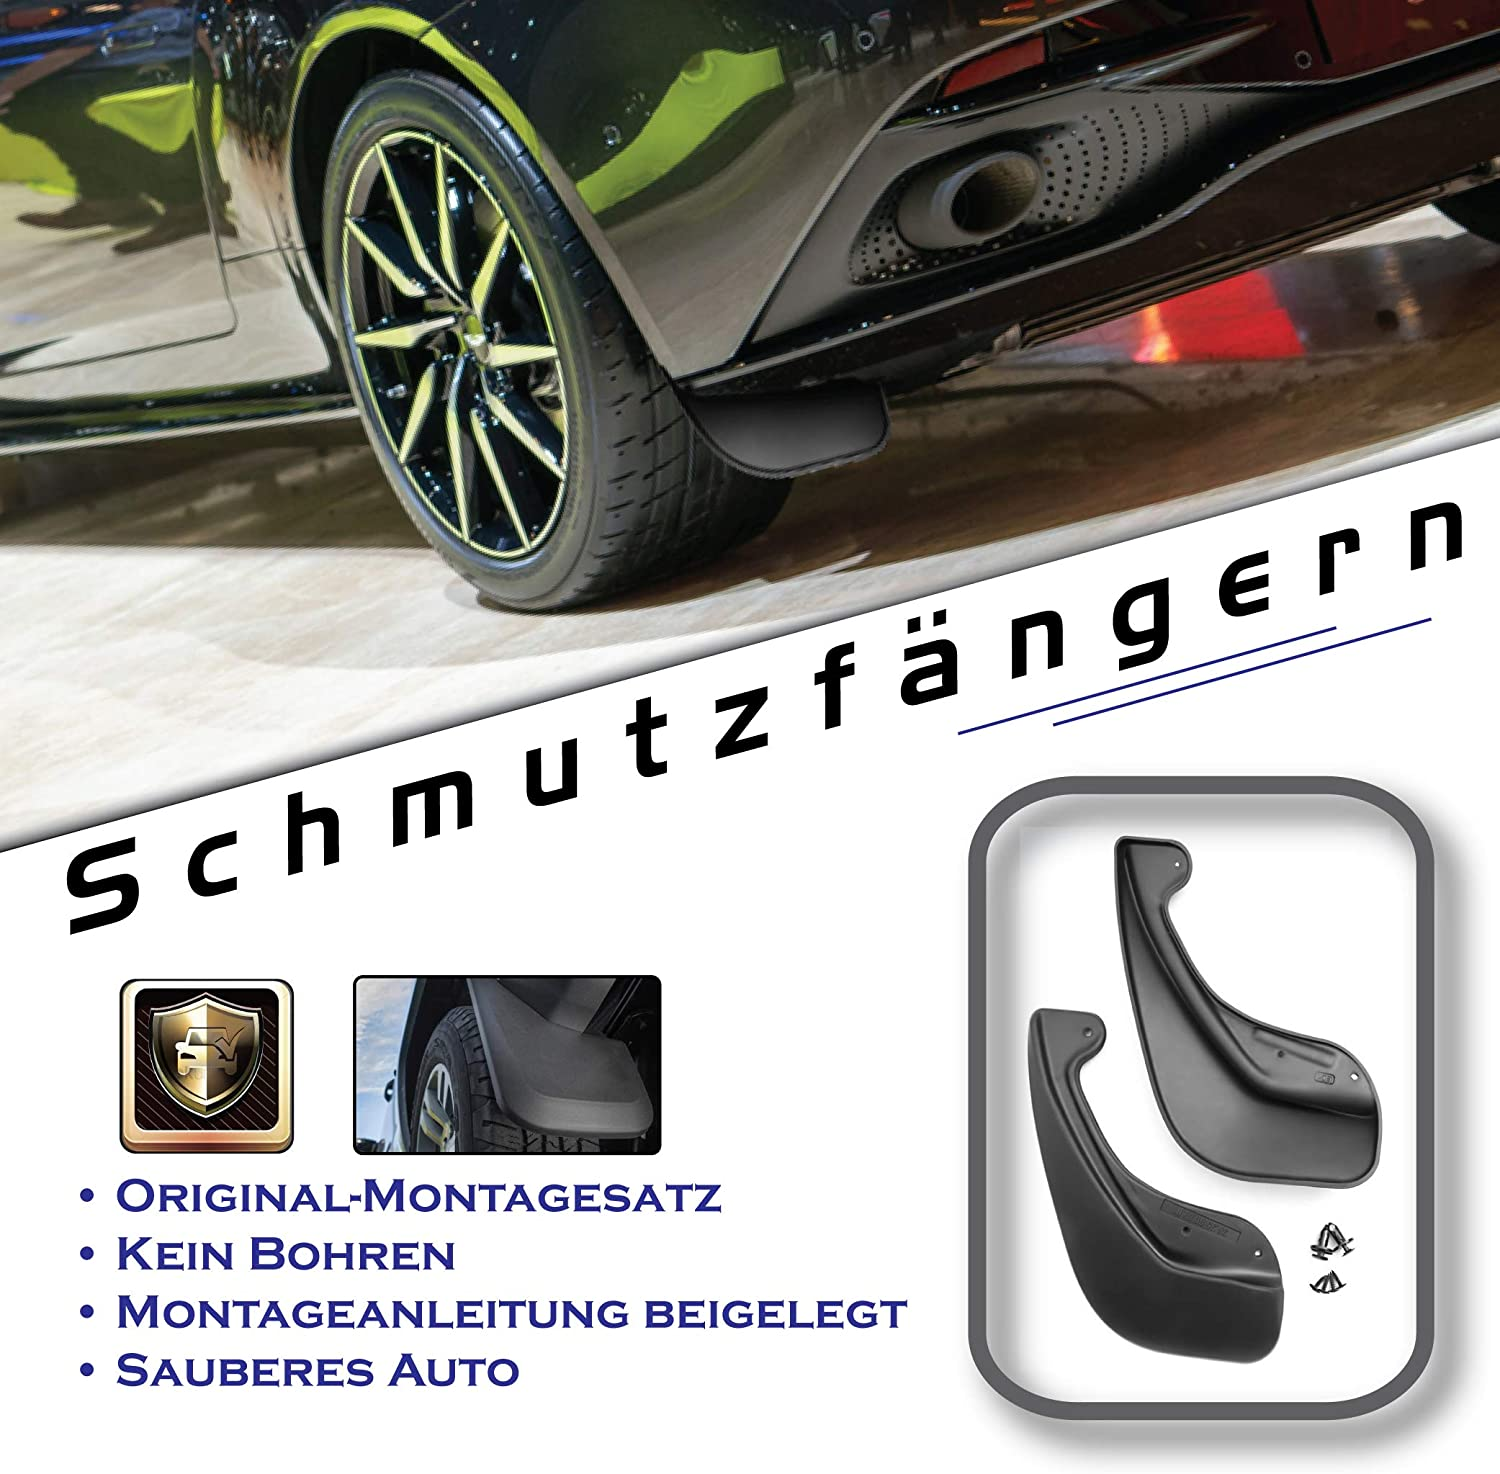 Black 2 Pieces with Attachment FROSCH EXP.NLF.15.12.E11 Perfect fit Rubber mudflaps Splash Guard Rear Mudguard for Fiat 500 Year: 07-11